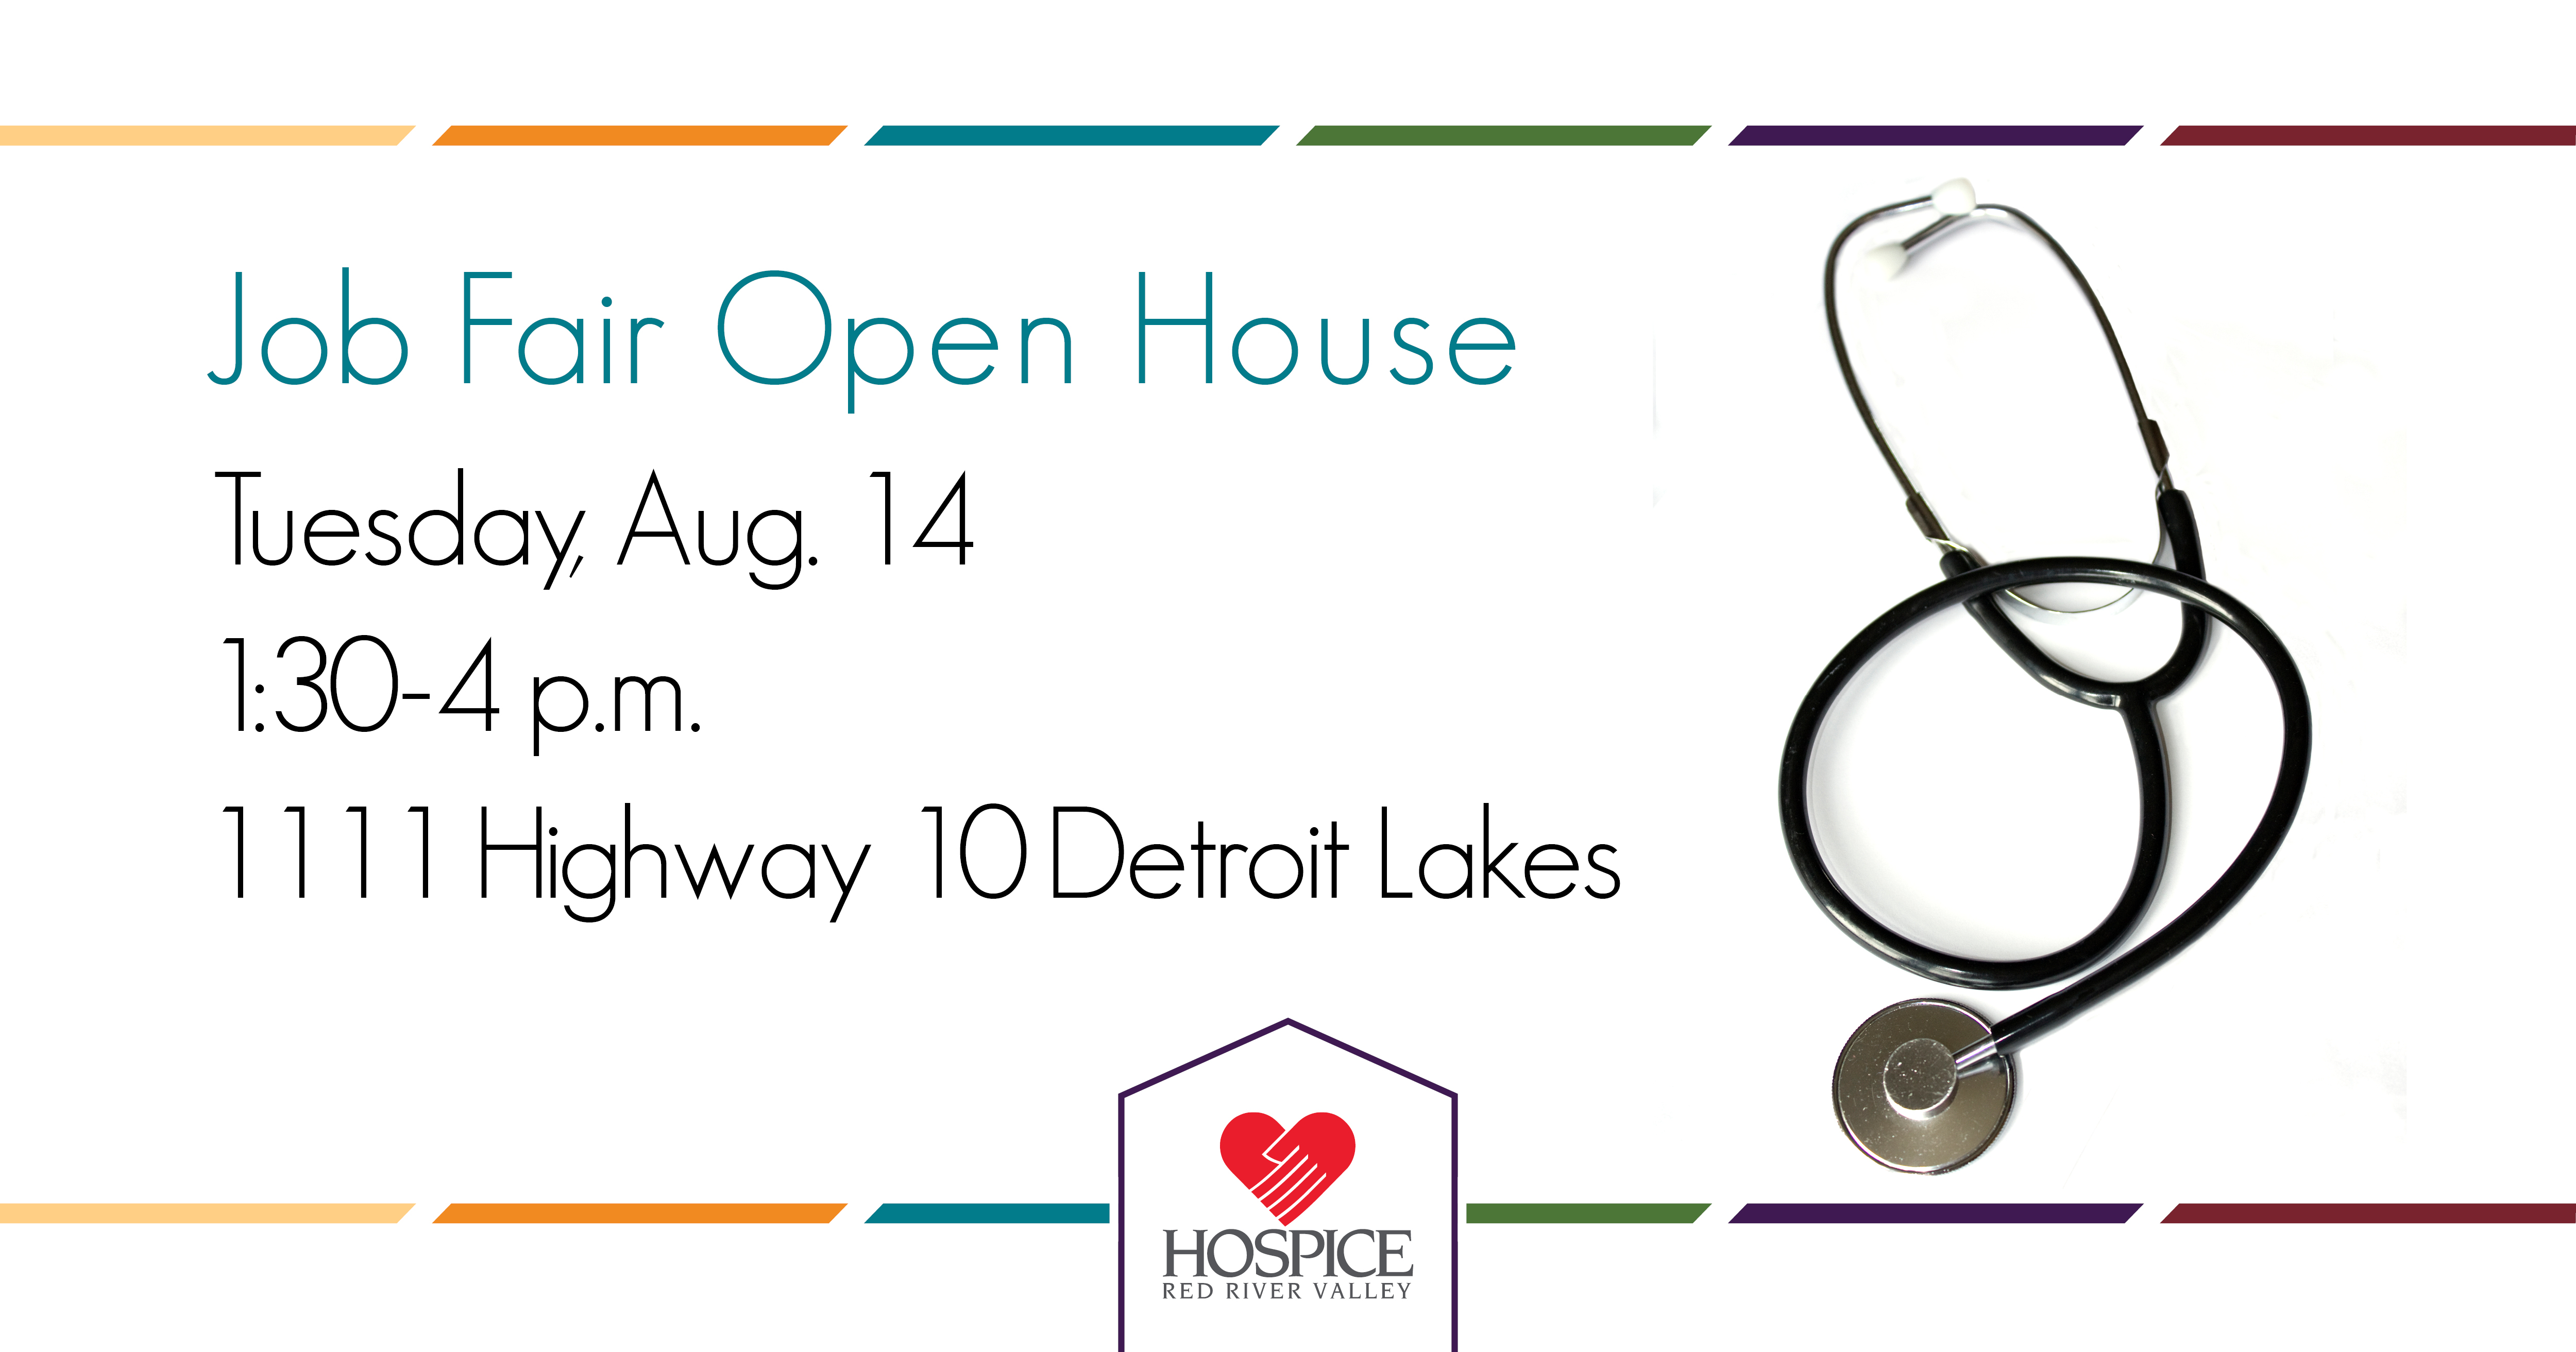 Job Fair Open House - Detroit Lakes - Hospice of the Red